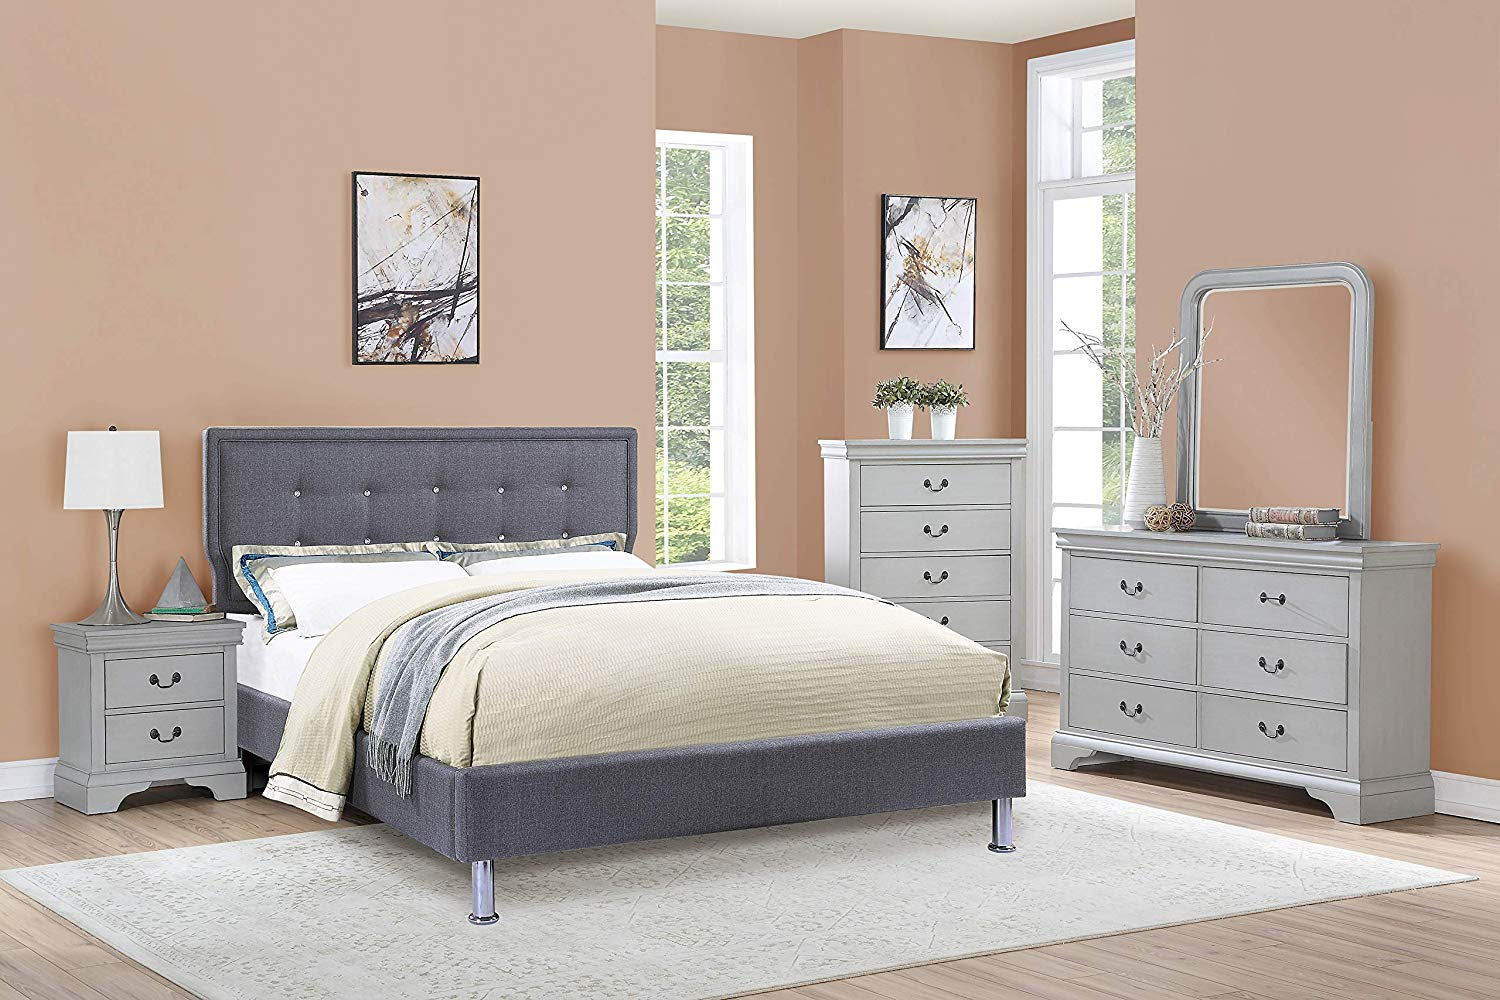 Blue Grey Color Elegant 4pc Set Bedroom Furniture Full Size Bed Dresser Mirror Nightstand Polyfiber Tufted HB